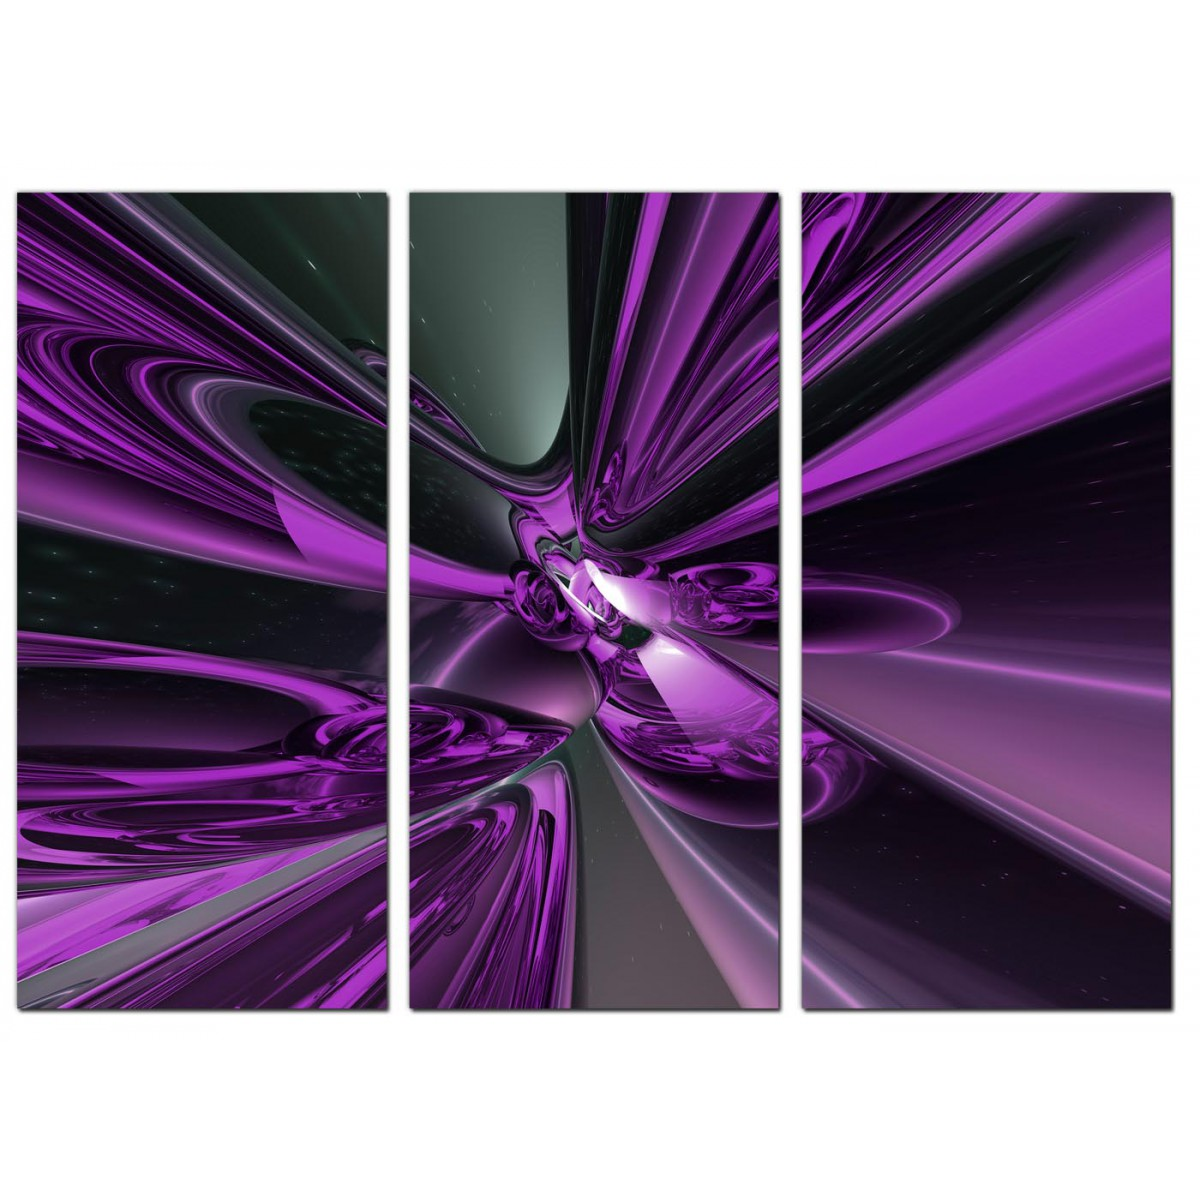 pink sofa bed for sale wesley hall reviews large abstract canvas art three panel in purple